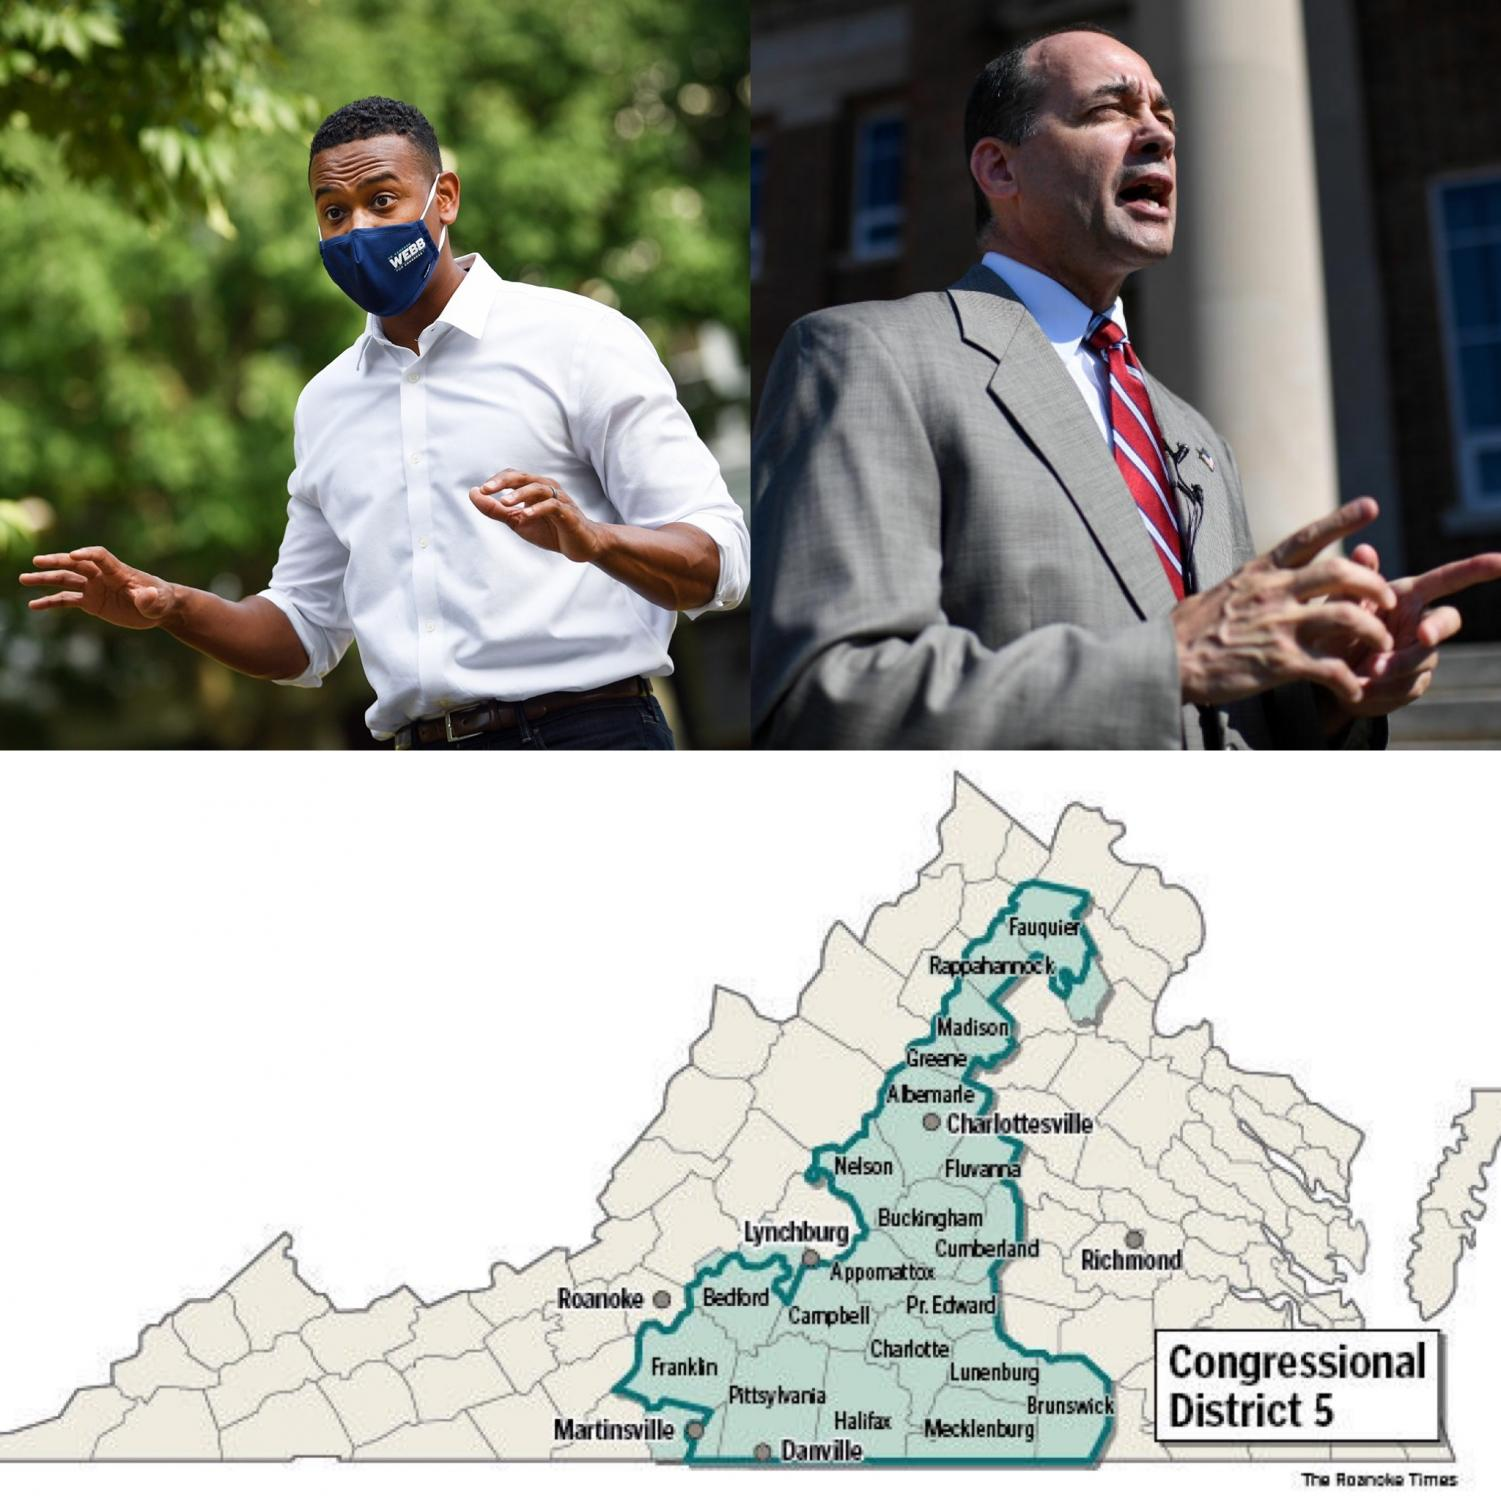 In the past Congressional race in Virginia